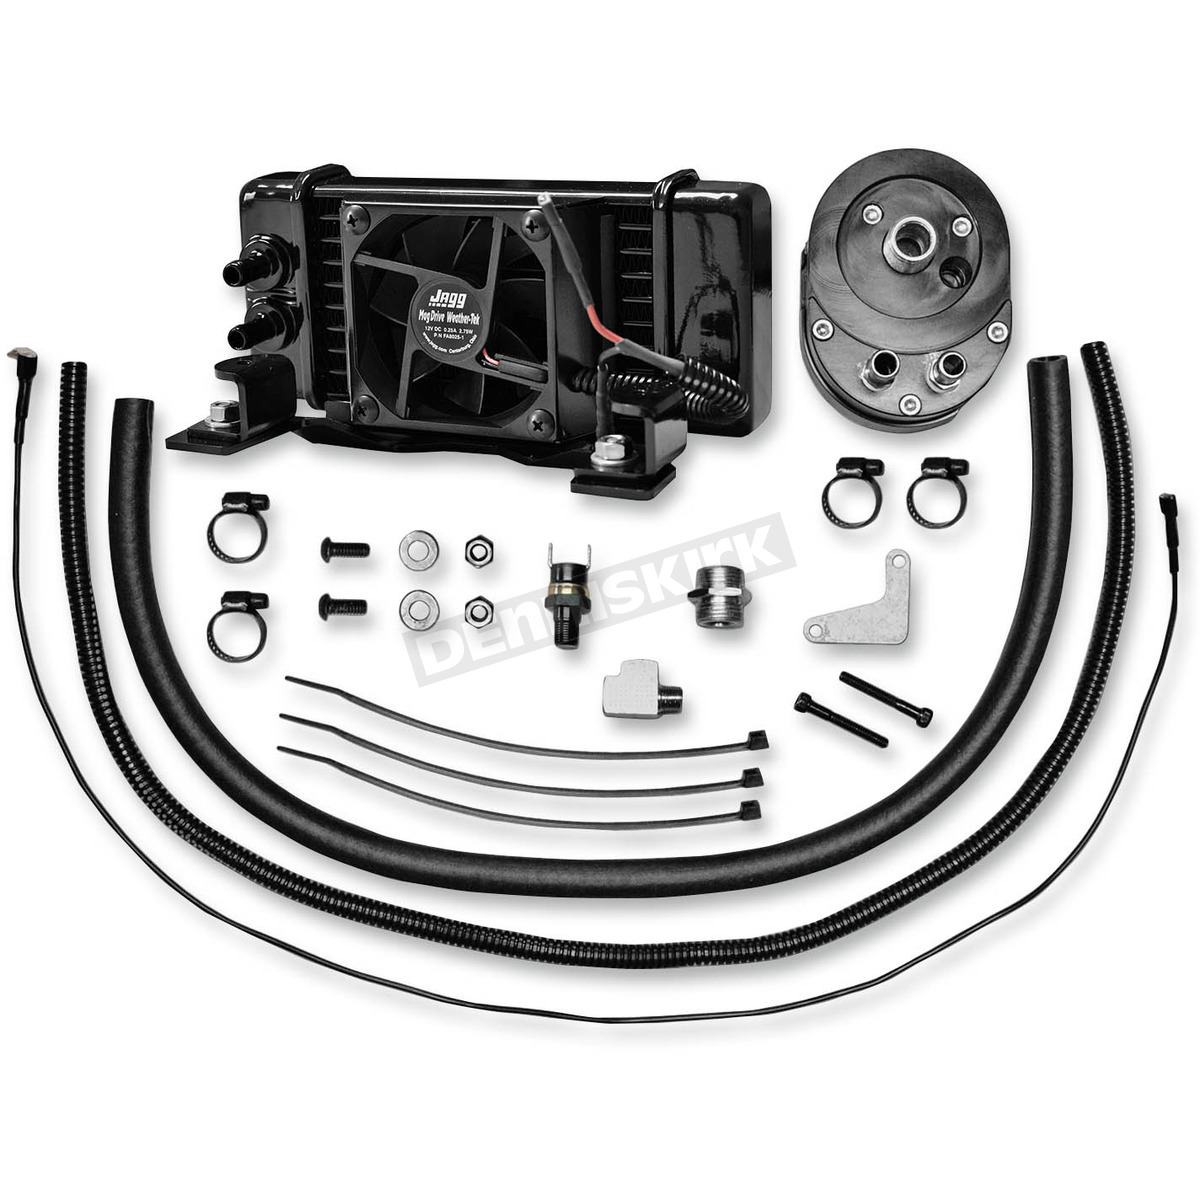 jagg low-mount fan-assisted oil cooler kit